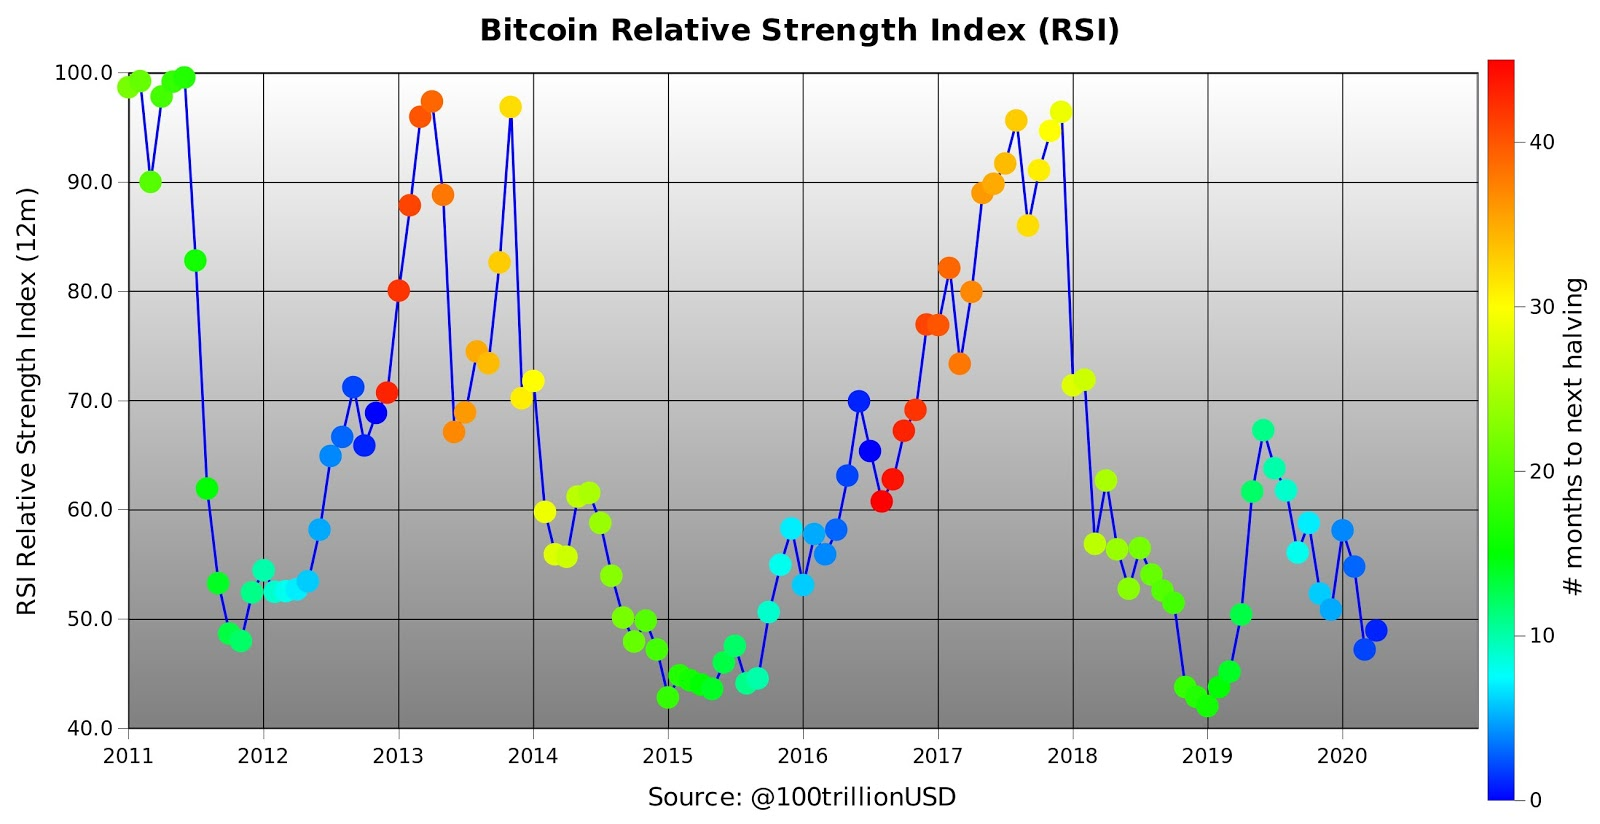 Bitcoin 12-month RSI, 2011-present. Source: PlanB/ Twitter